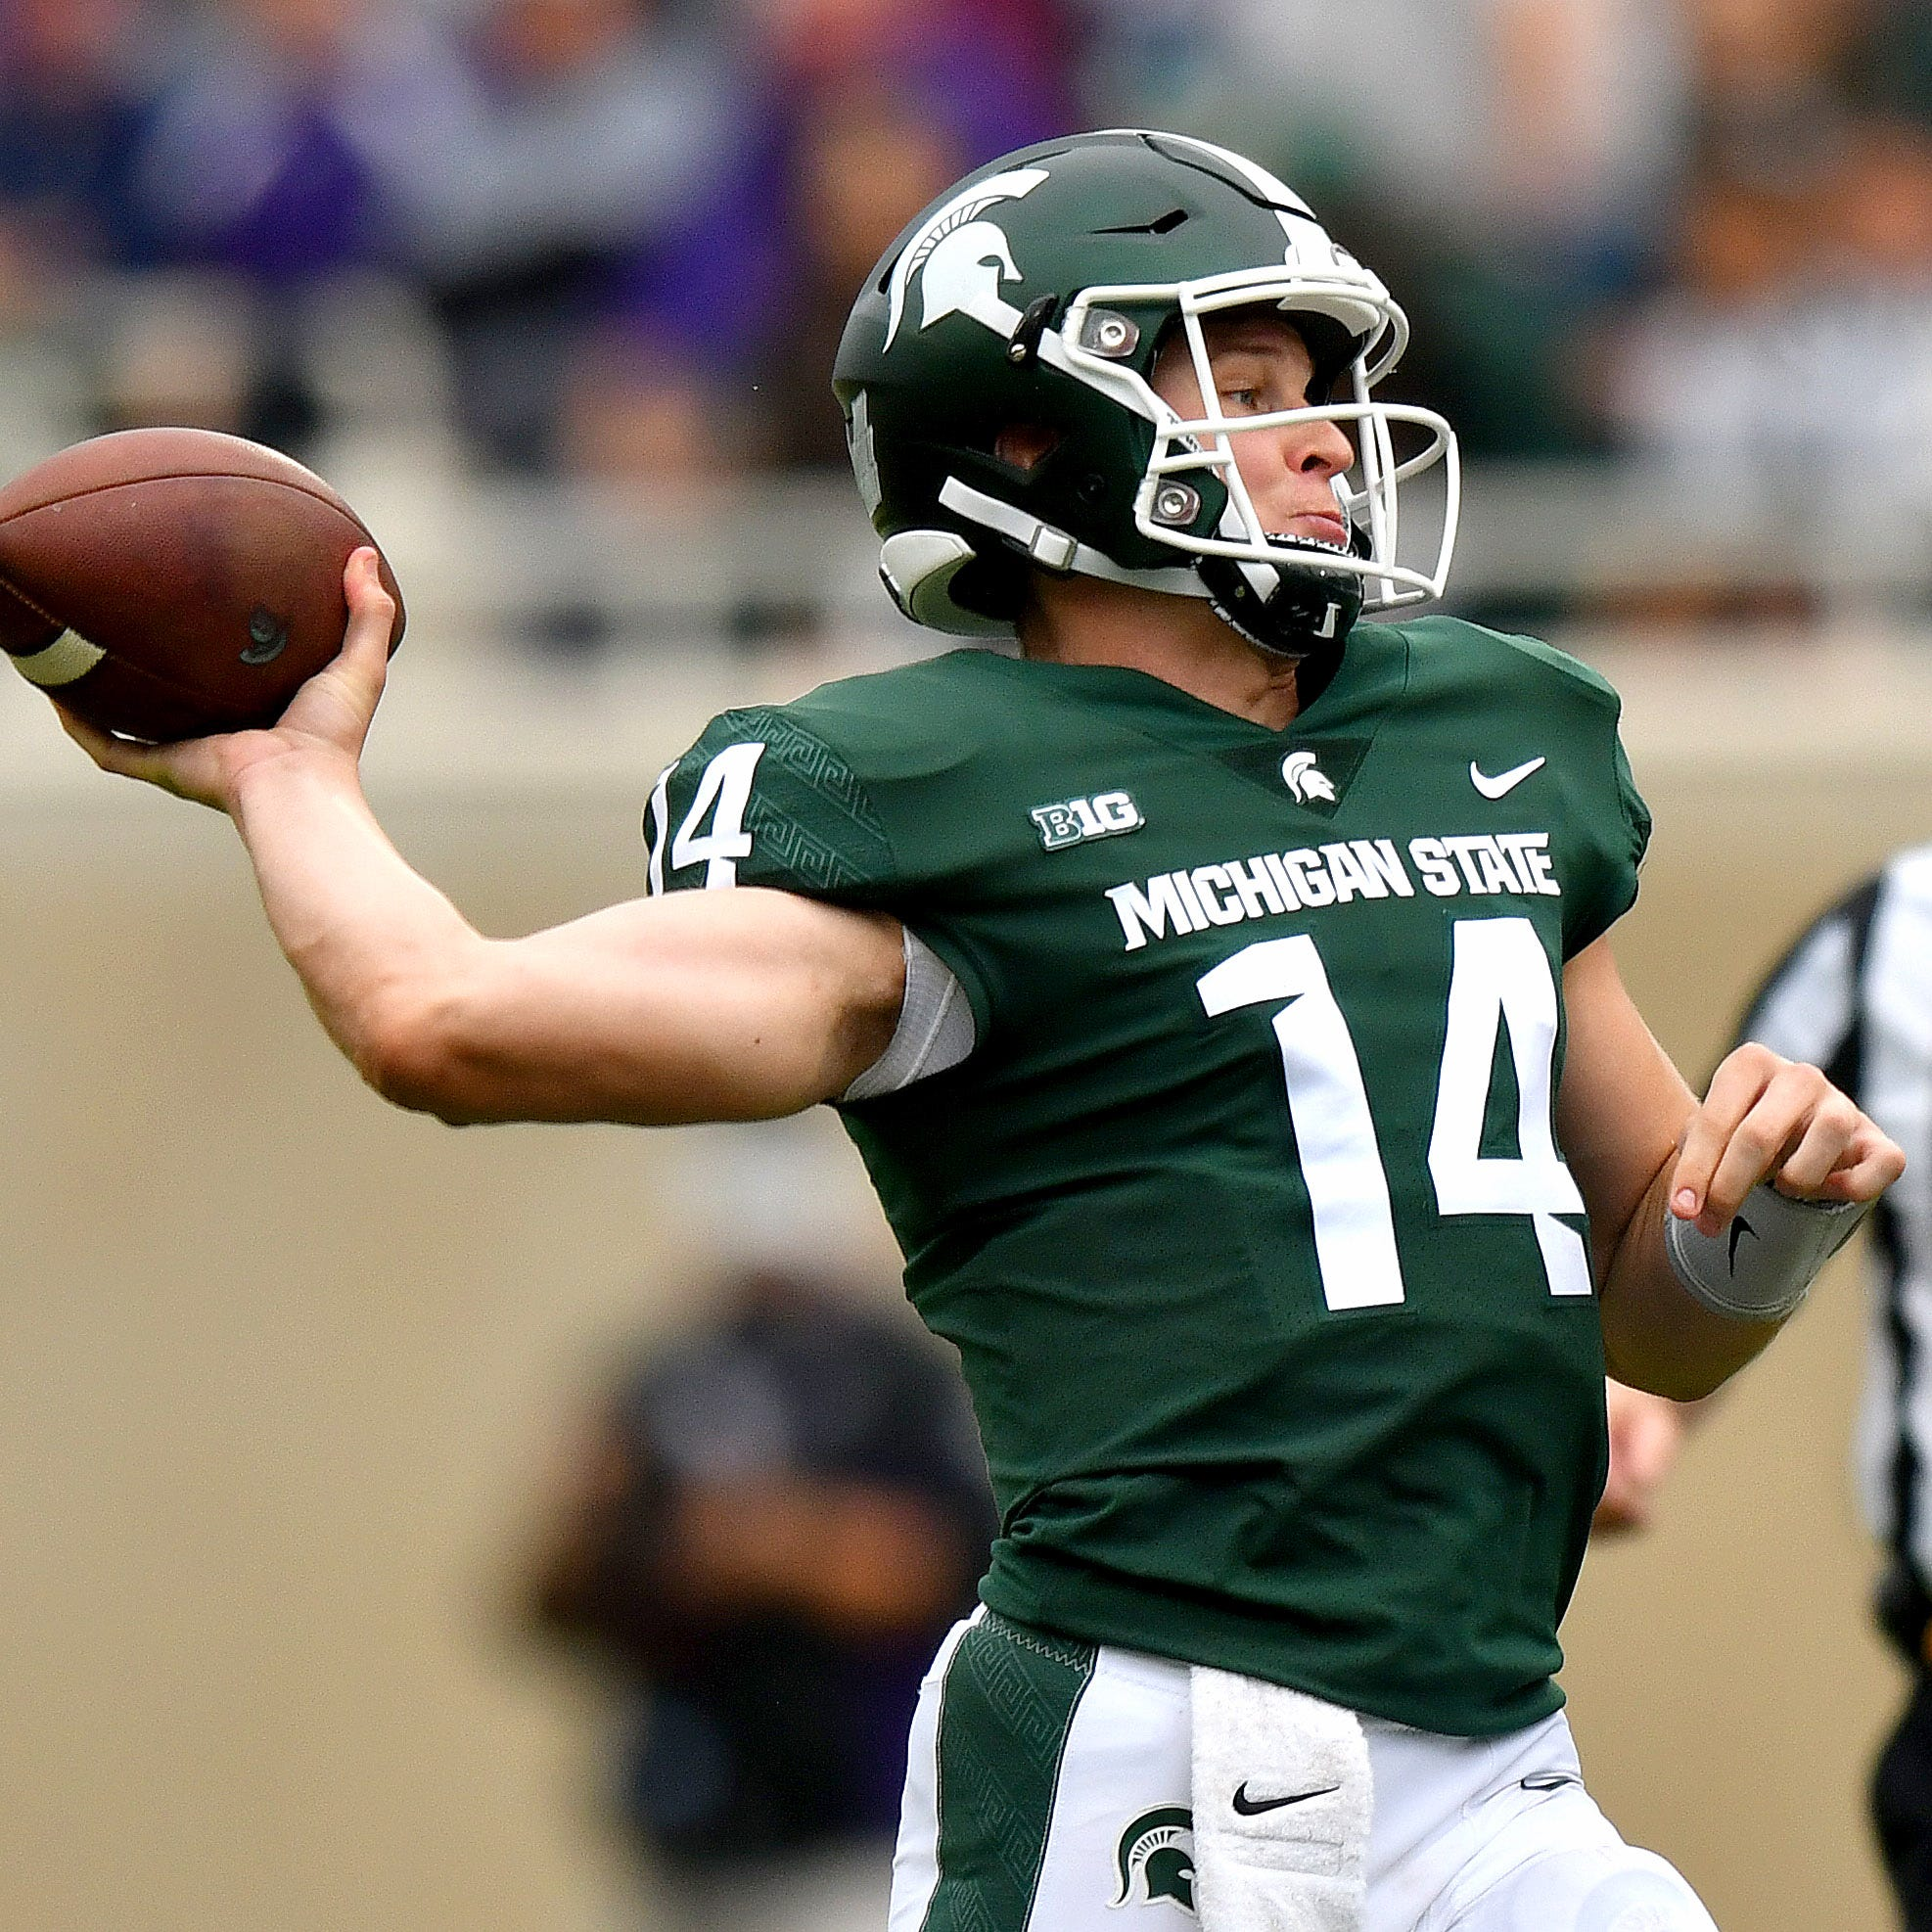 Once an outsider, MSU's Lewerke in middle of rivalry